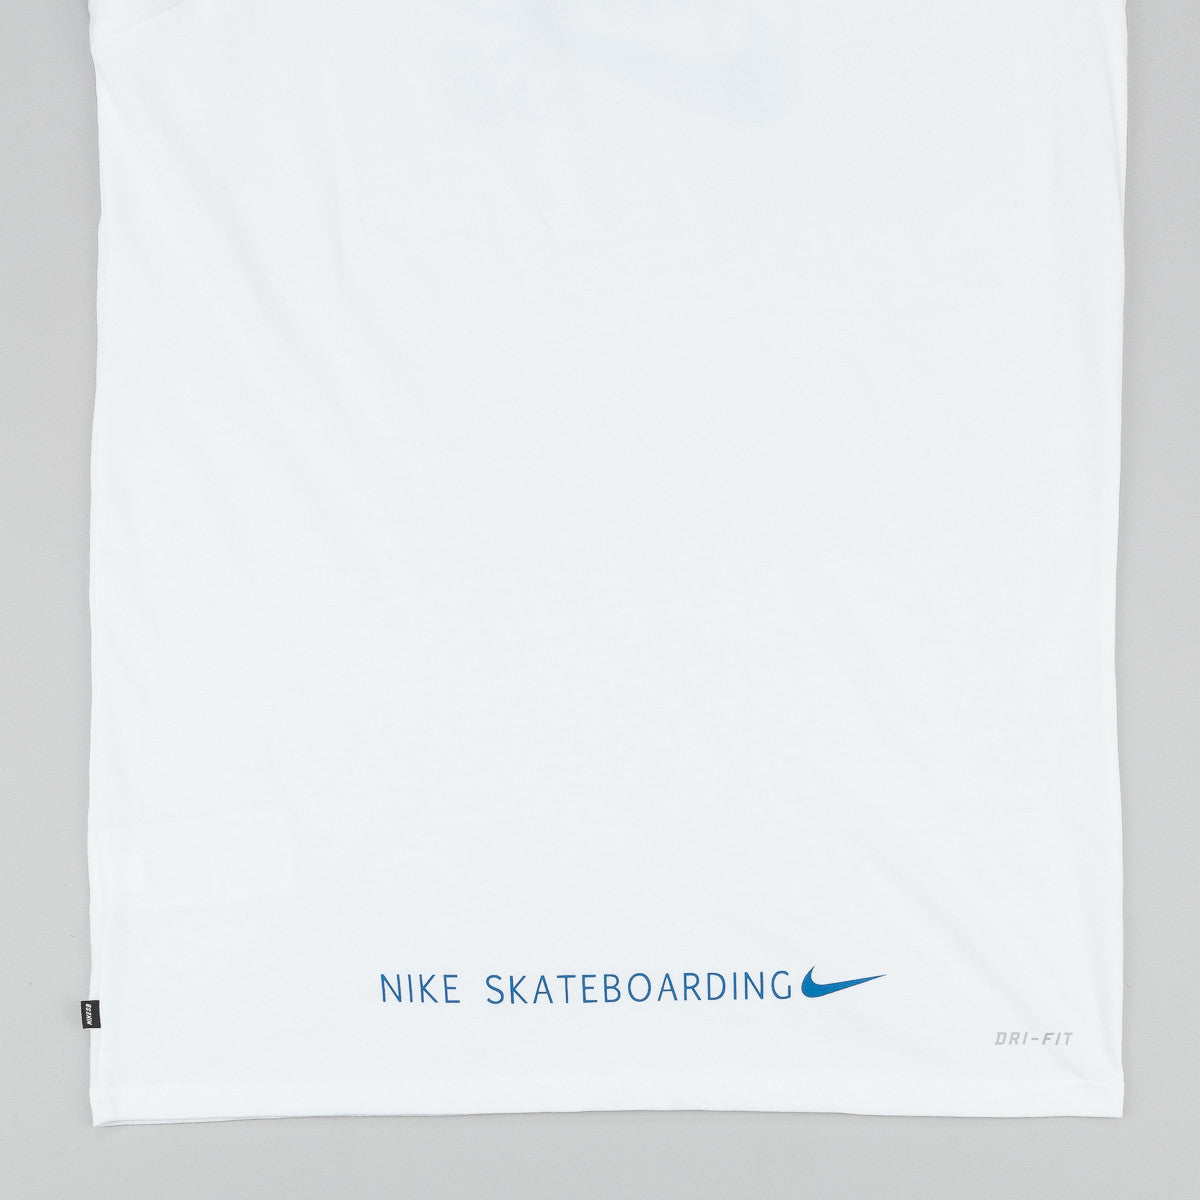 Nike SB Dri-Fit 360 Fern Fill T-Shirt - White